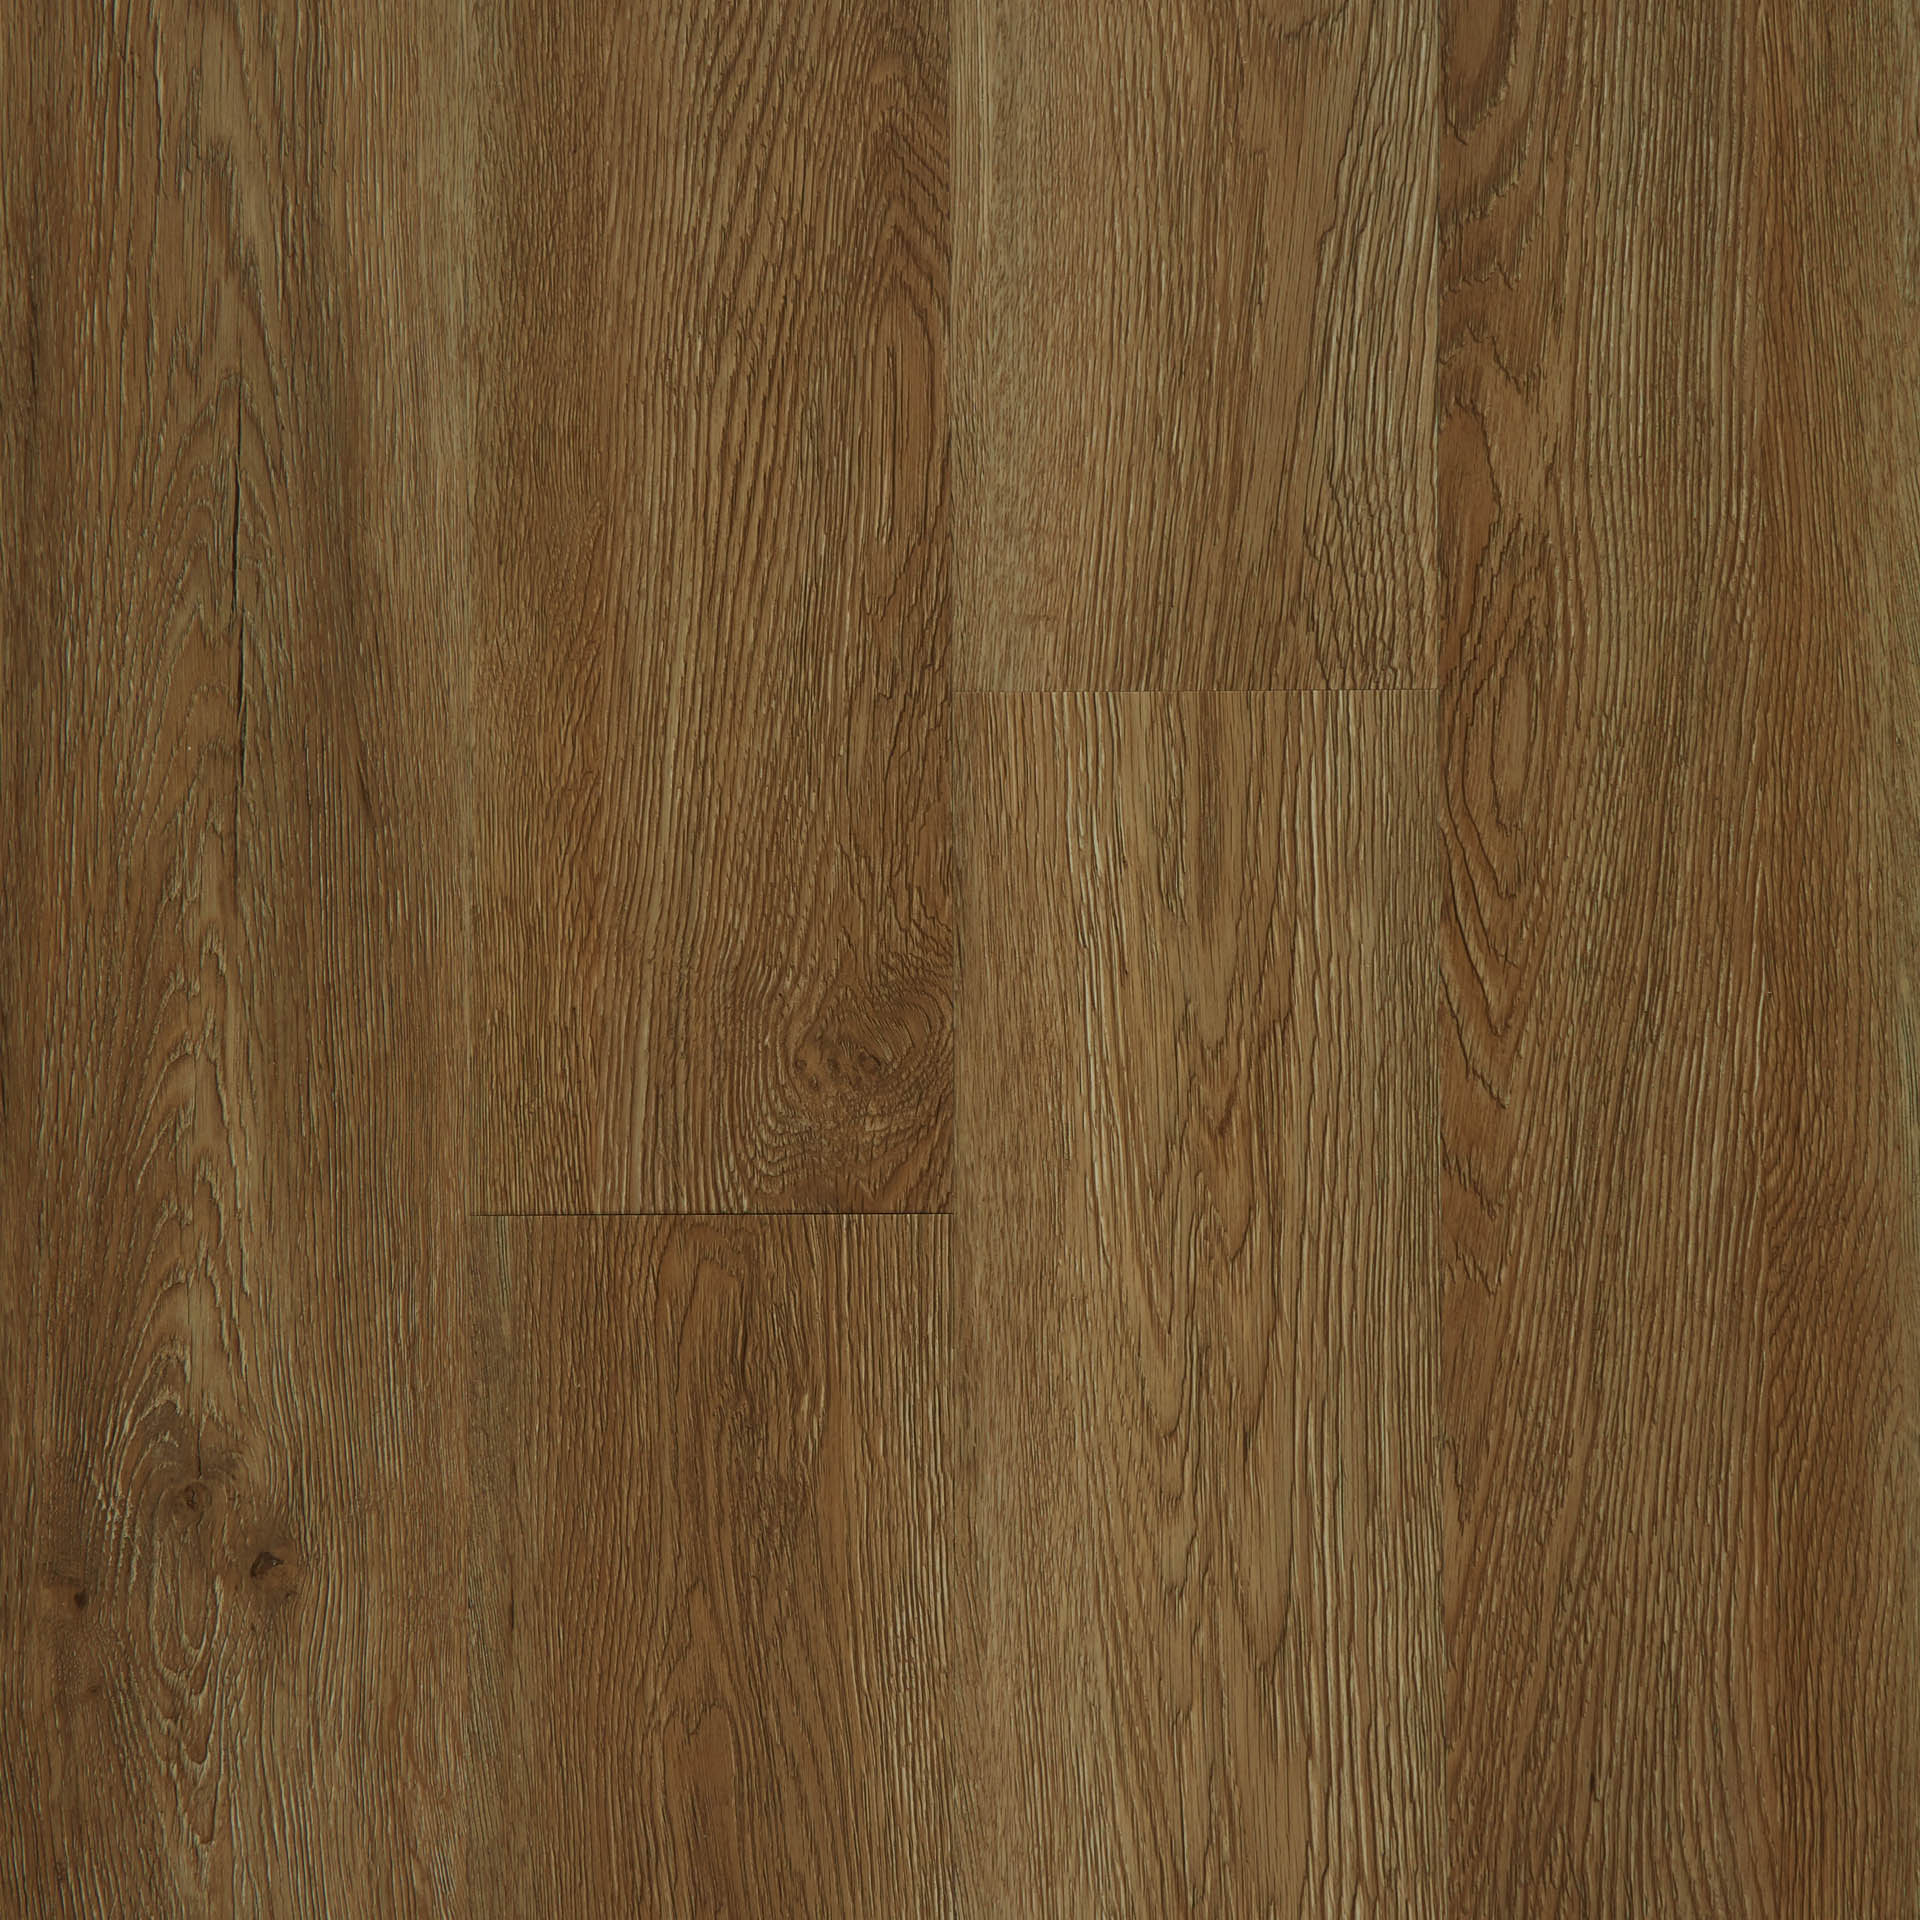 Natural Personality - National Apartment Flooring